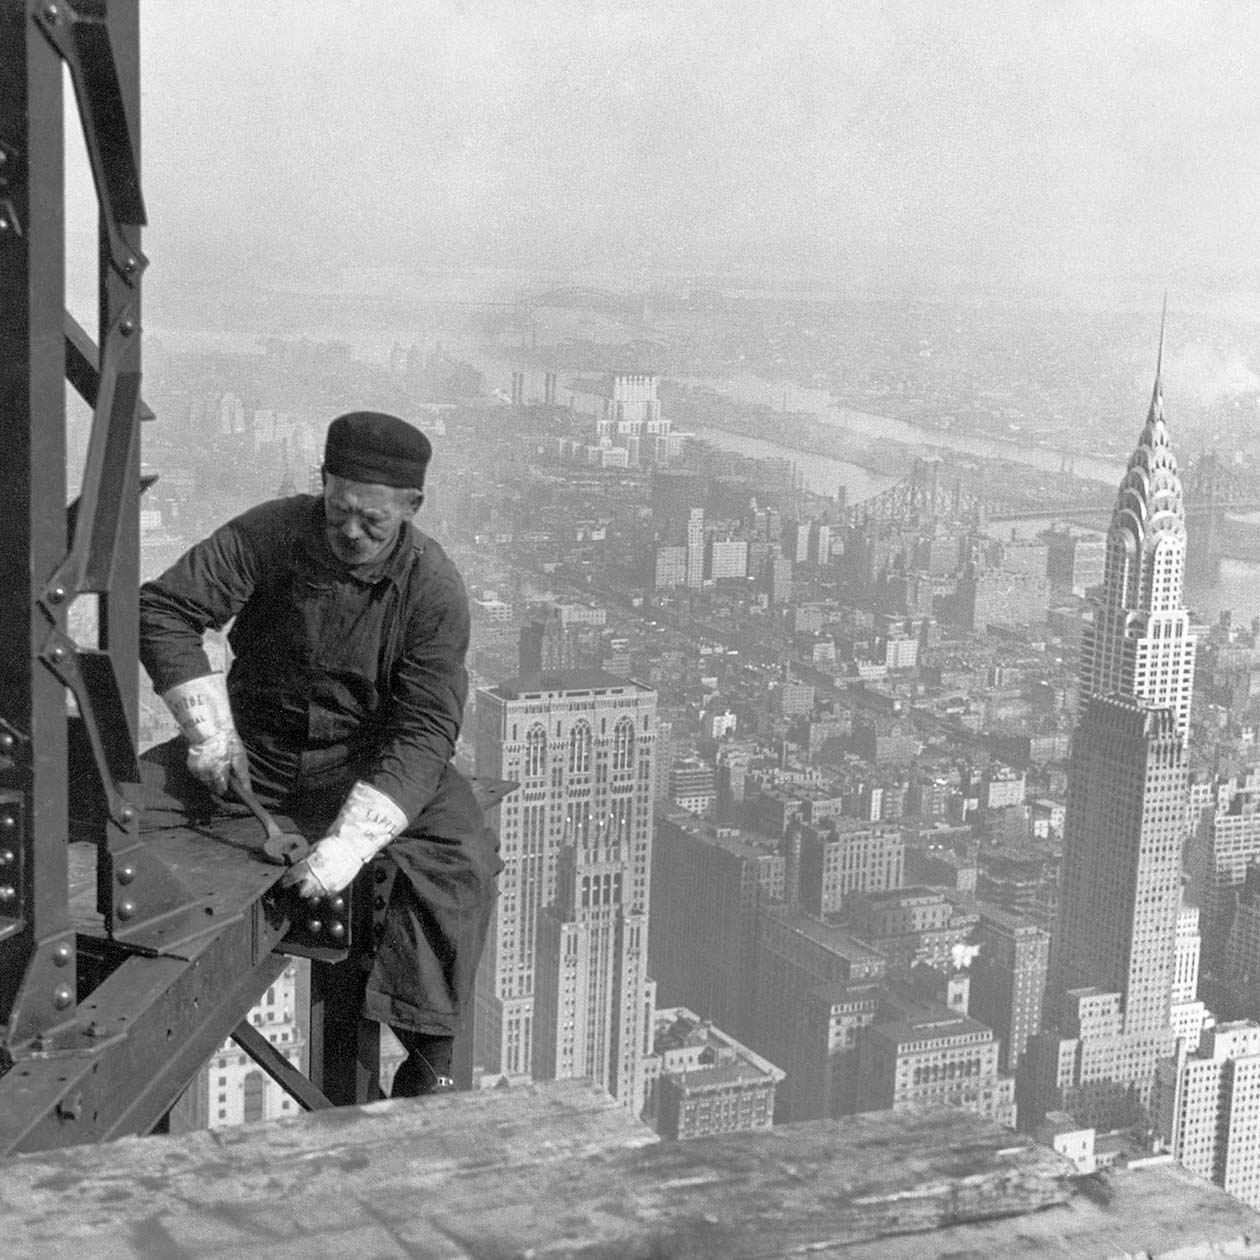 archival photo, steelworker on beam, builds skyscraper